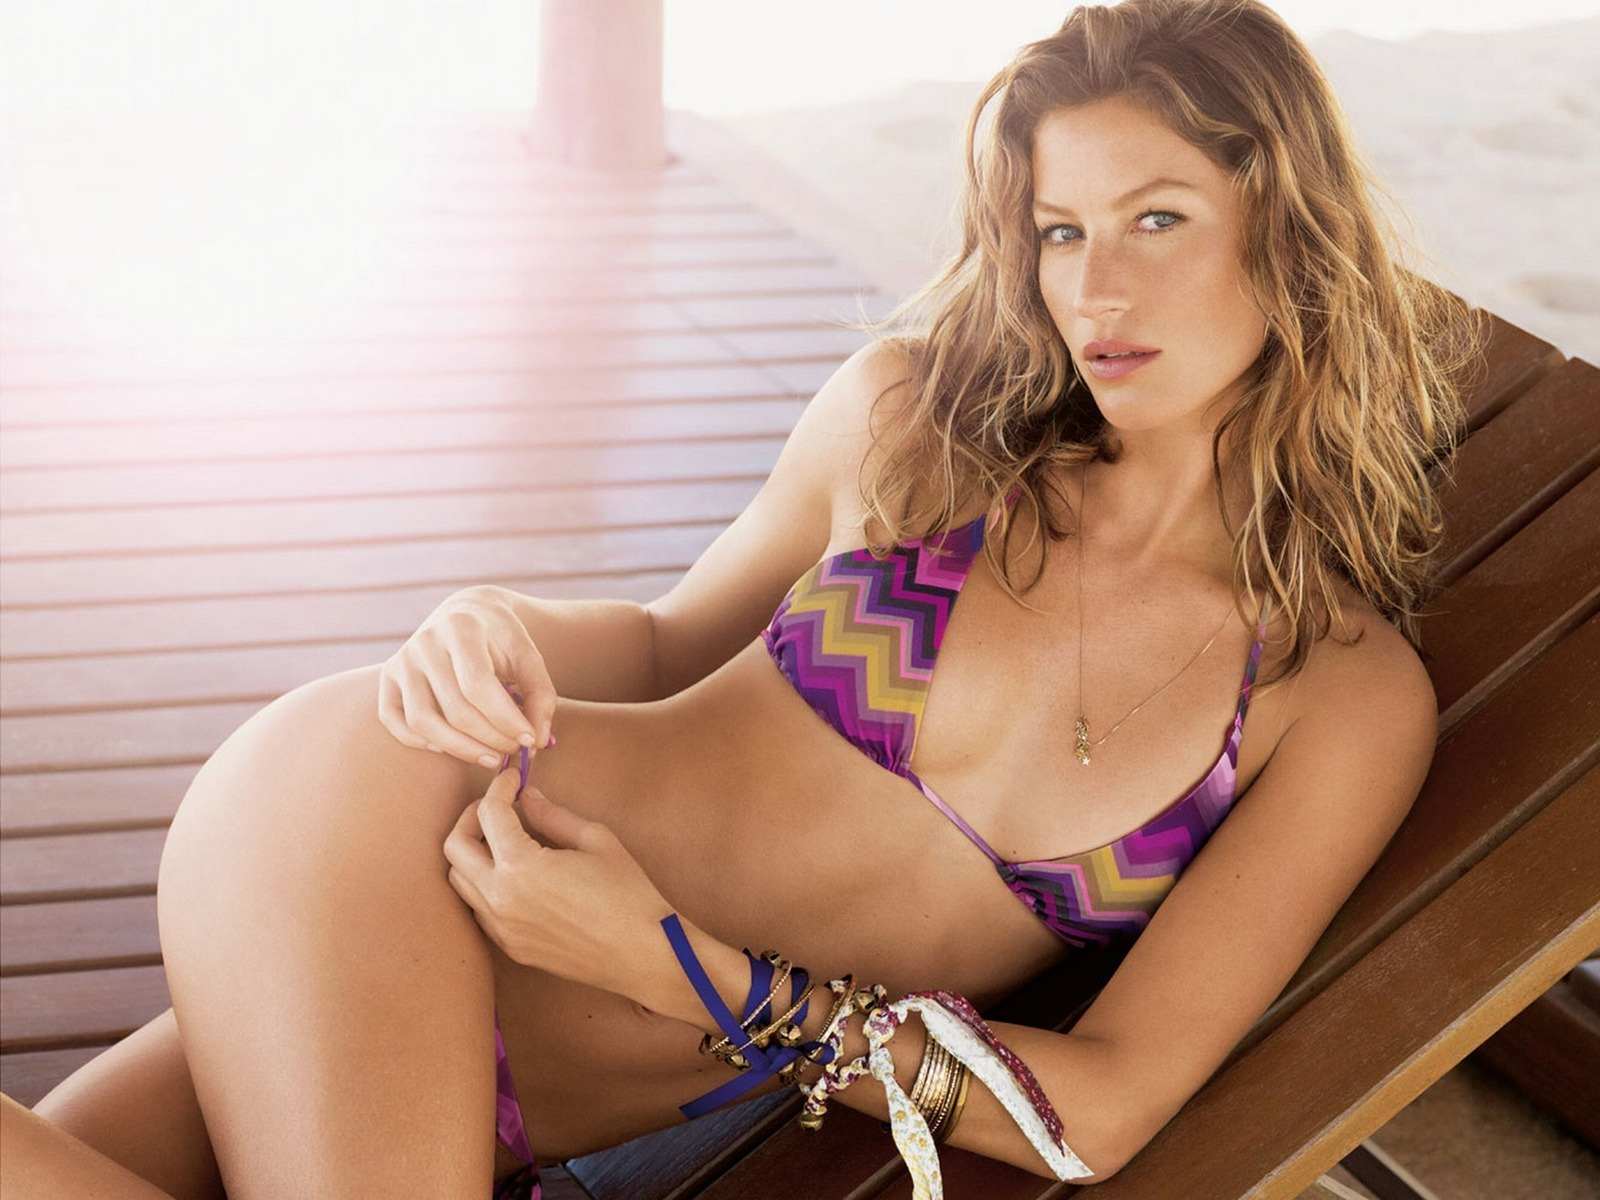 Gisele - Gisele Bundchen Wallpaper (22686257) - Fanpop